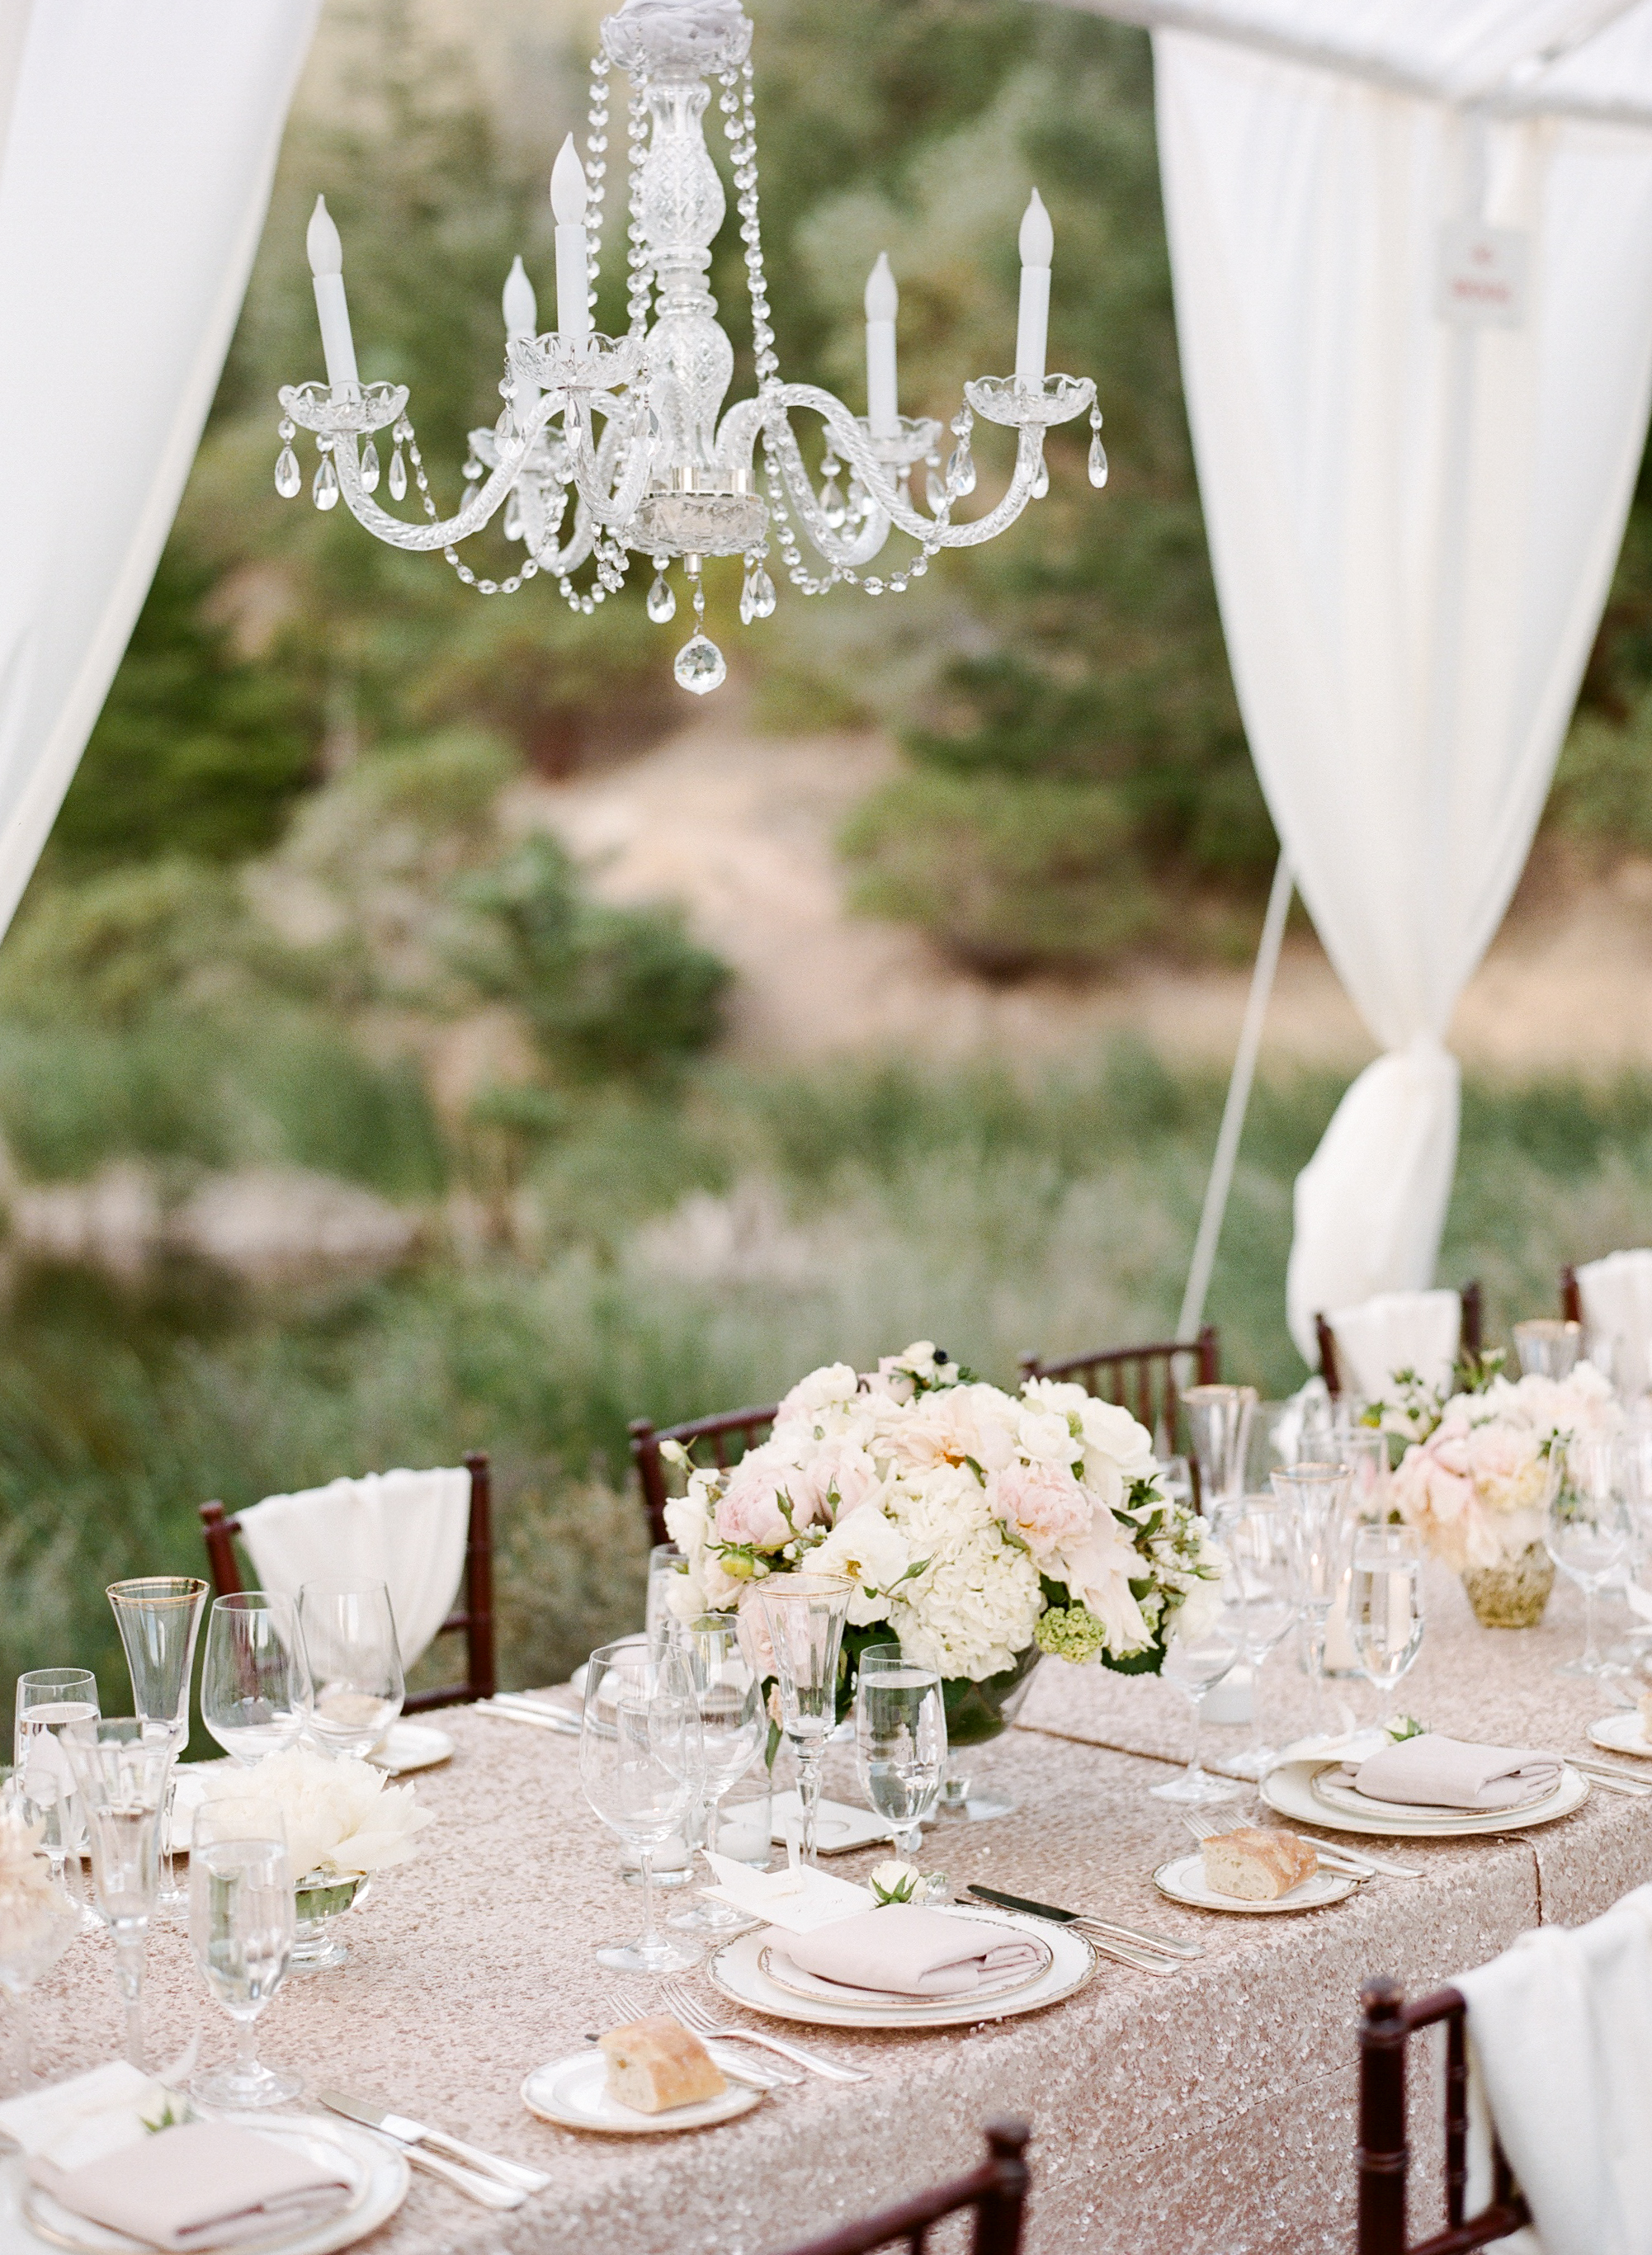 The canopied outdoor reception boasted glittering tablecloths and elegant chandeliers, as well as matching blush centerpieces; photo by Sylvie Gil